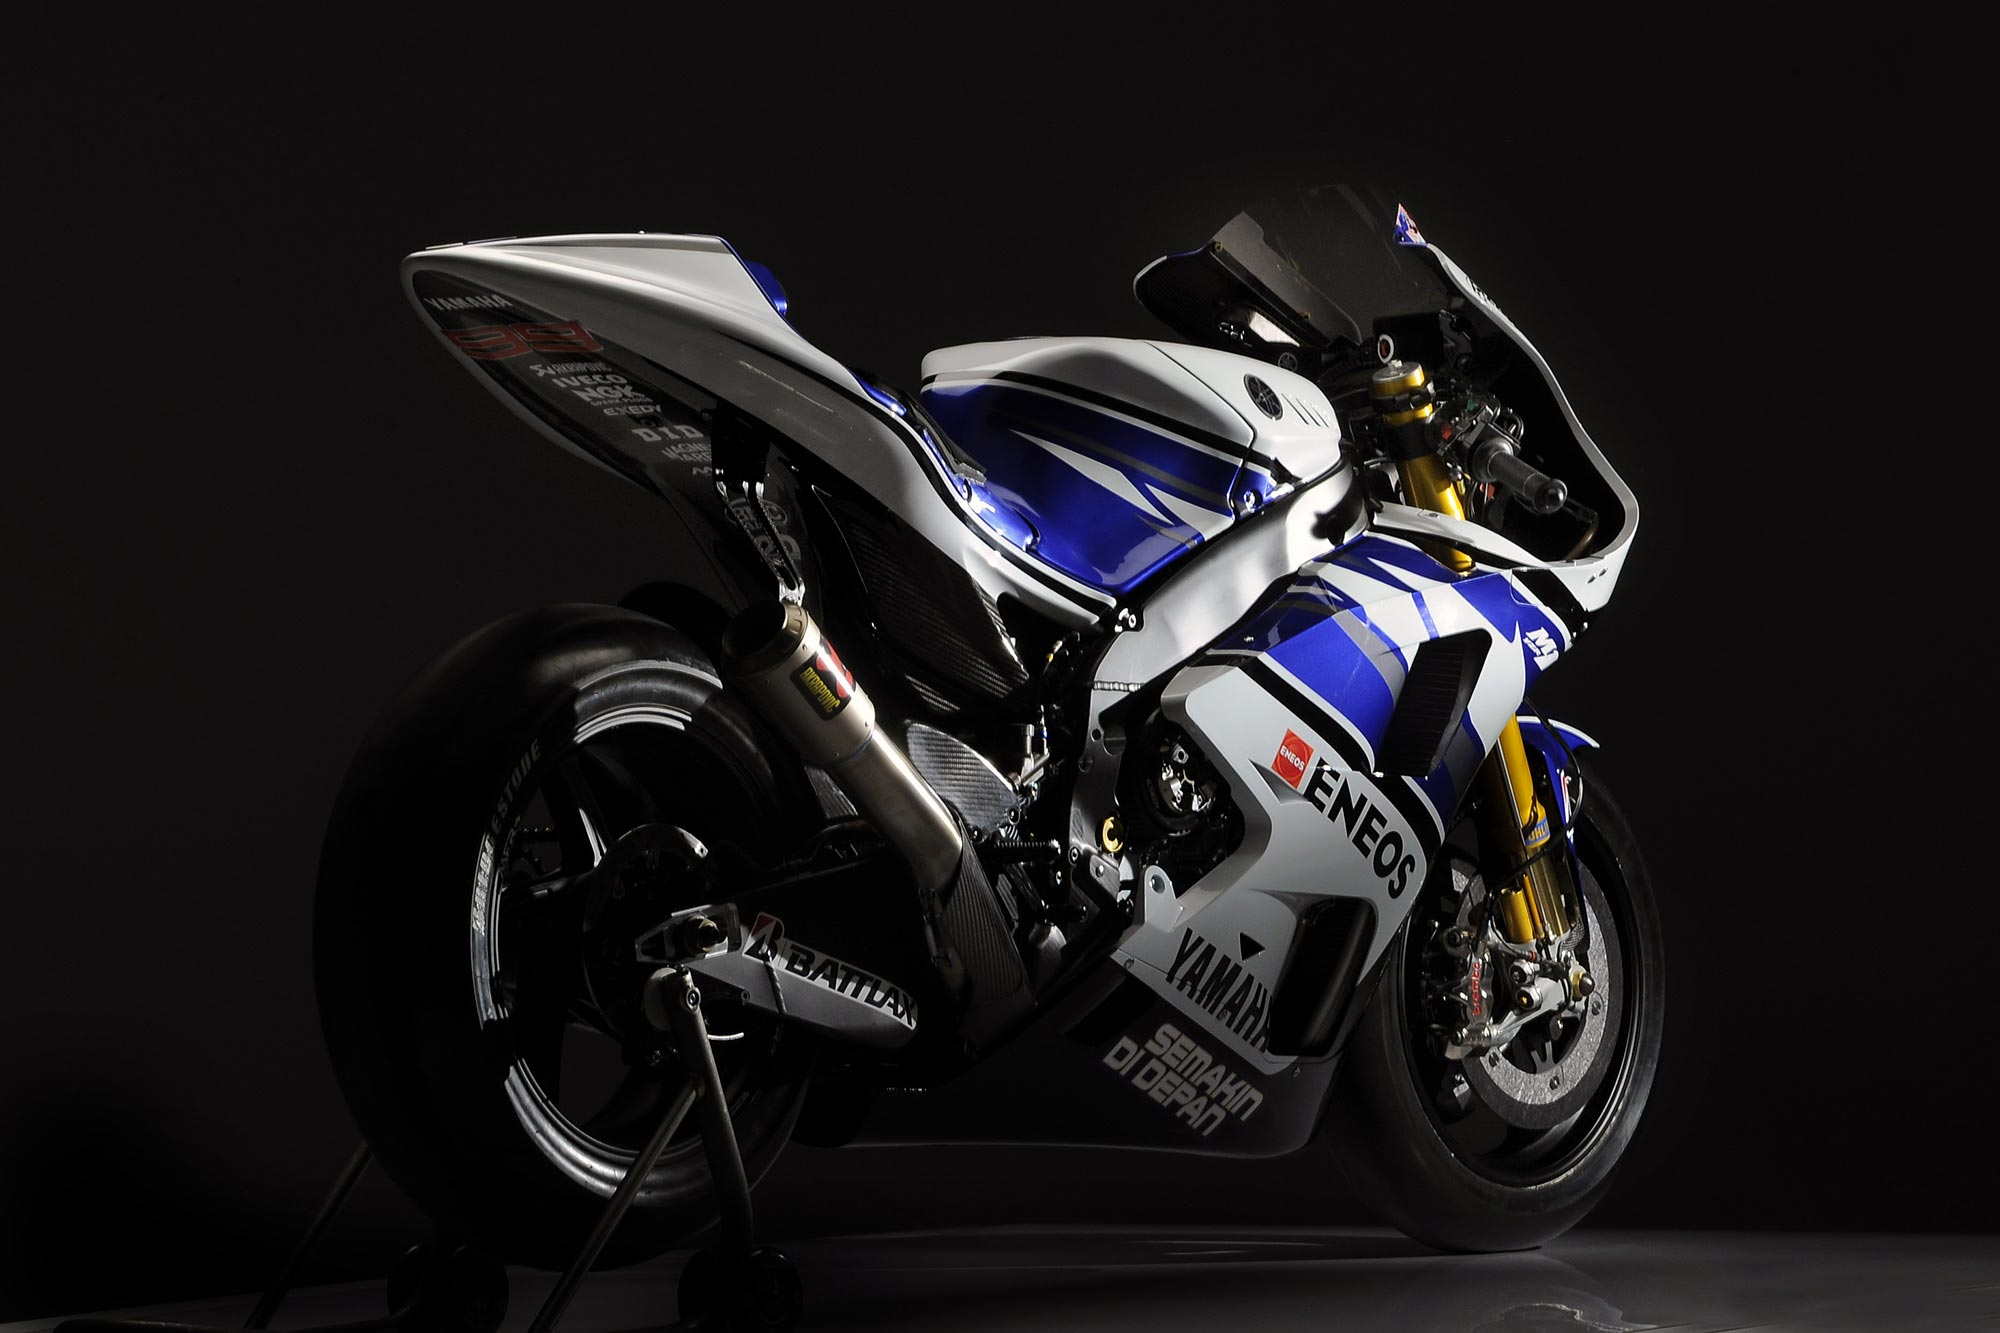 The incredibly fast Yamaha YZR M1s was raced in the Red Bull 2013 MotoGP.